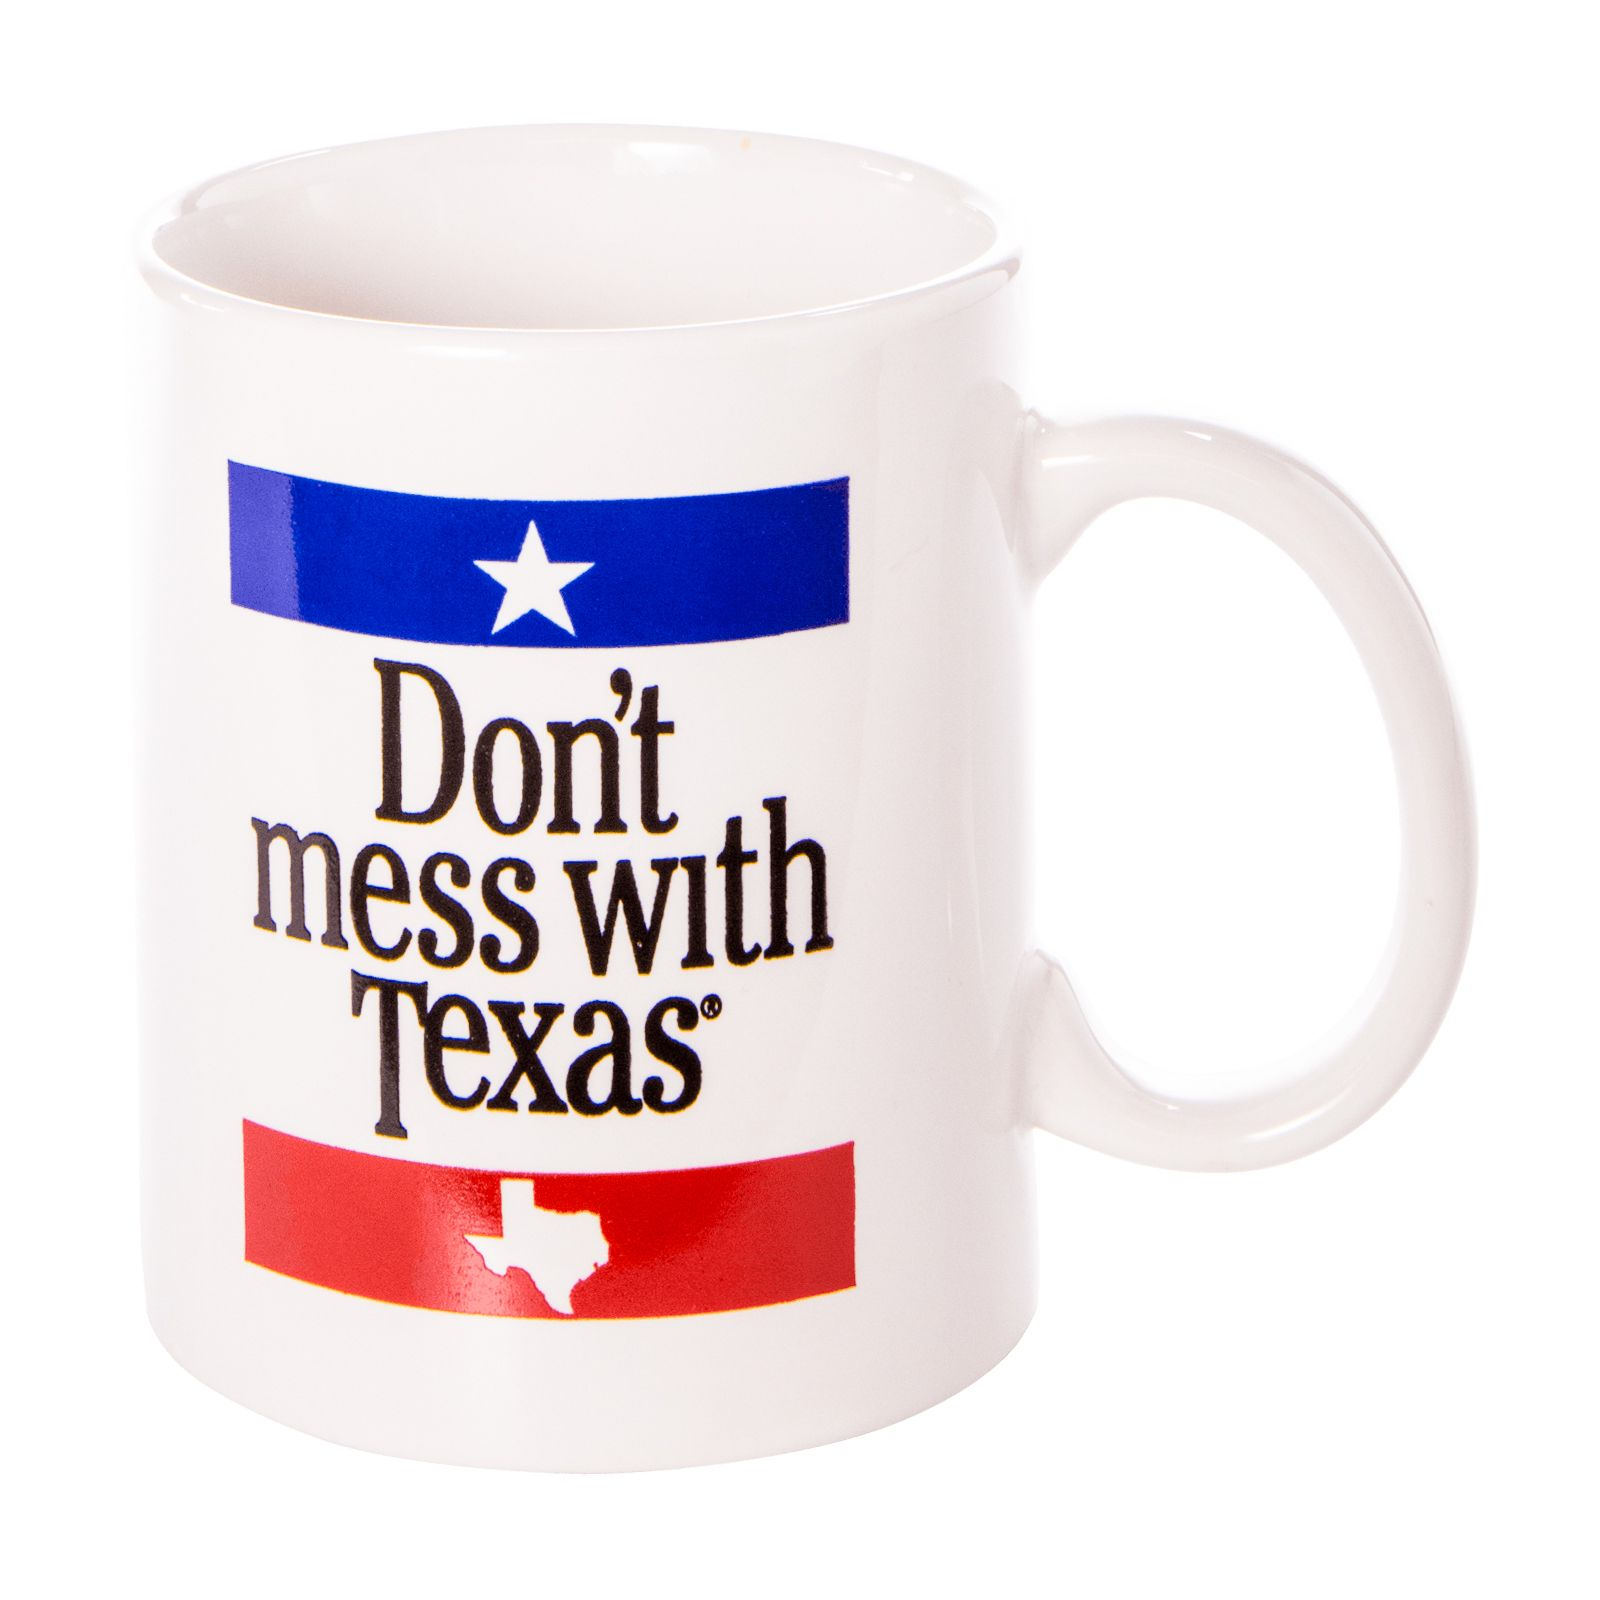 Don't Mess with Texas Ceramic Mug